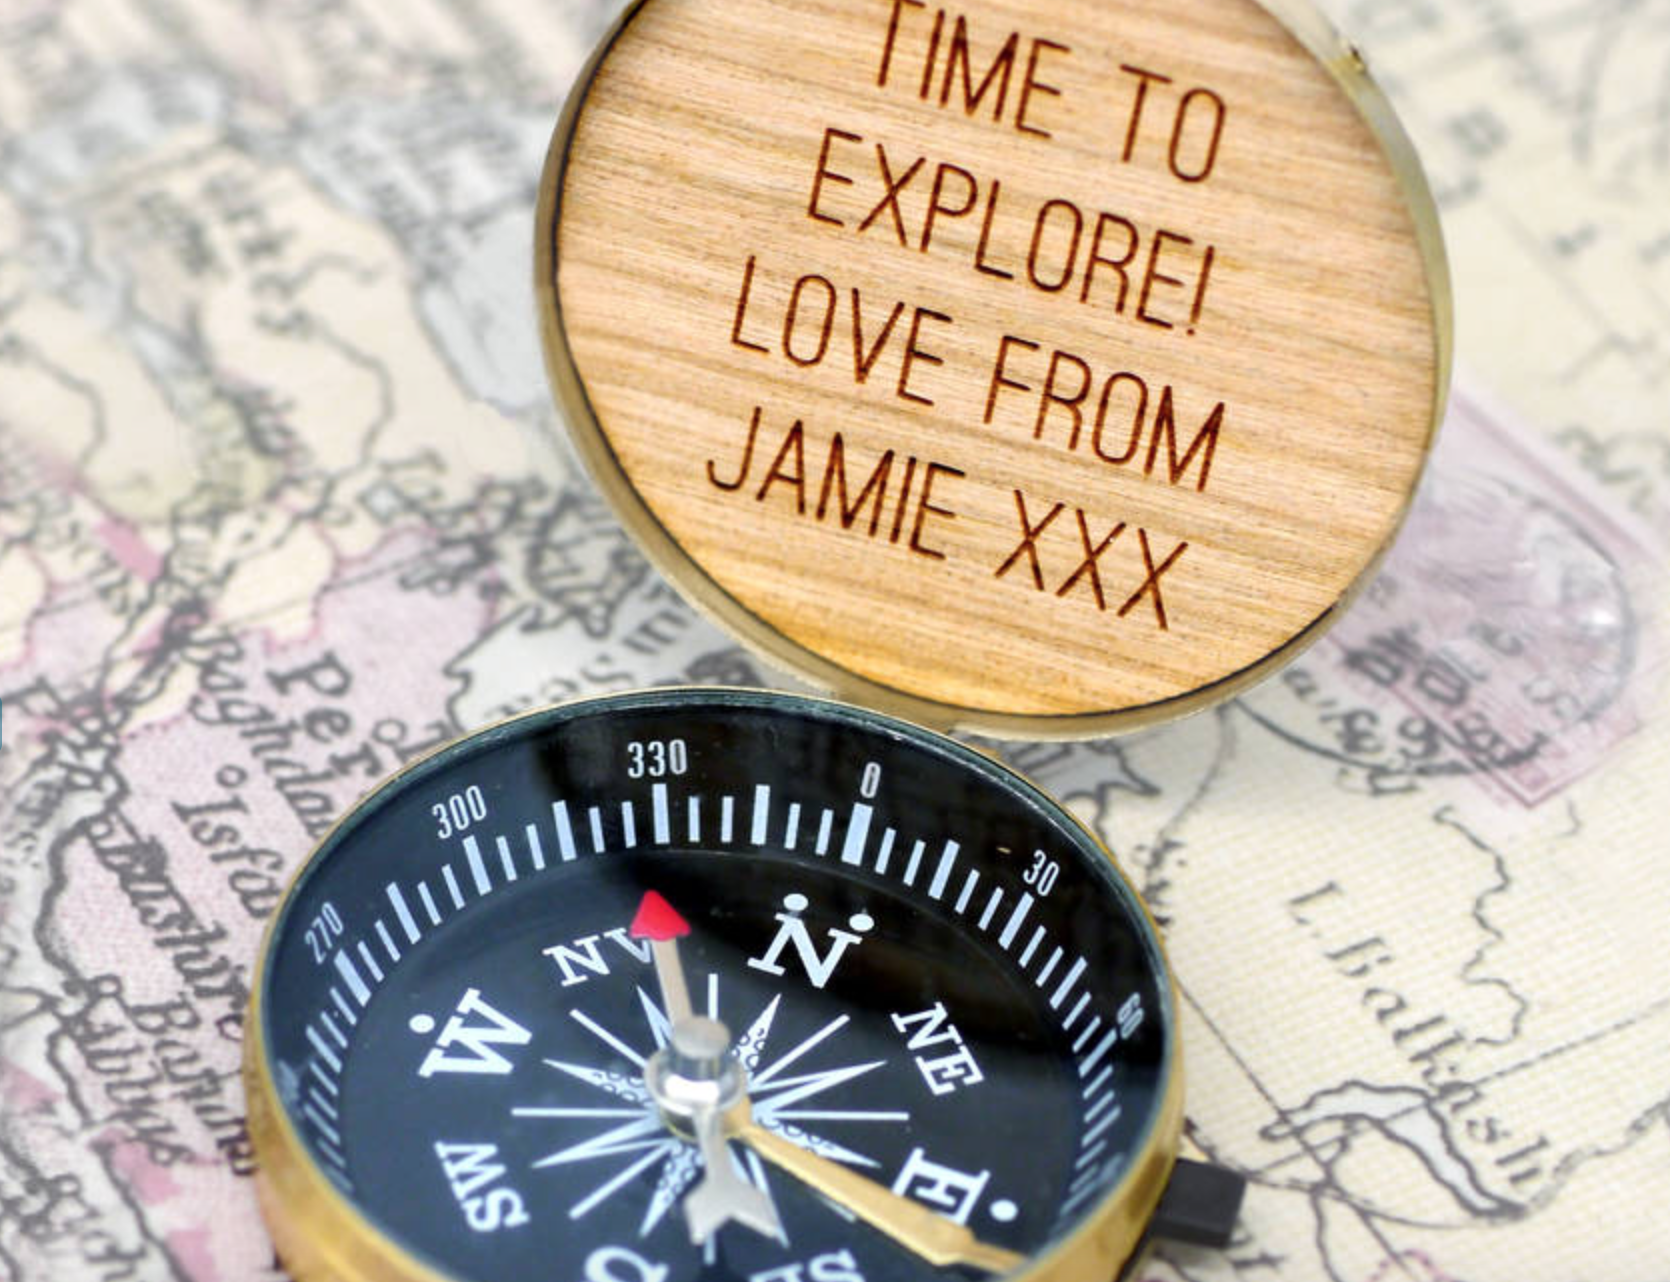 Źródło:http://www.notonthehighstreet.com/mariaallenjewellery/product/personalised-compact-compass